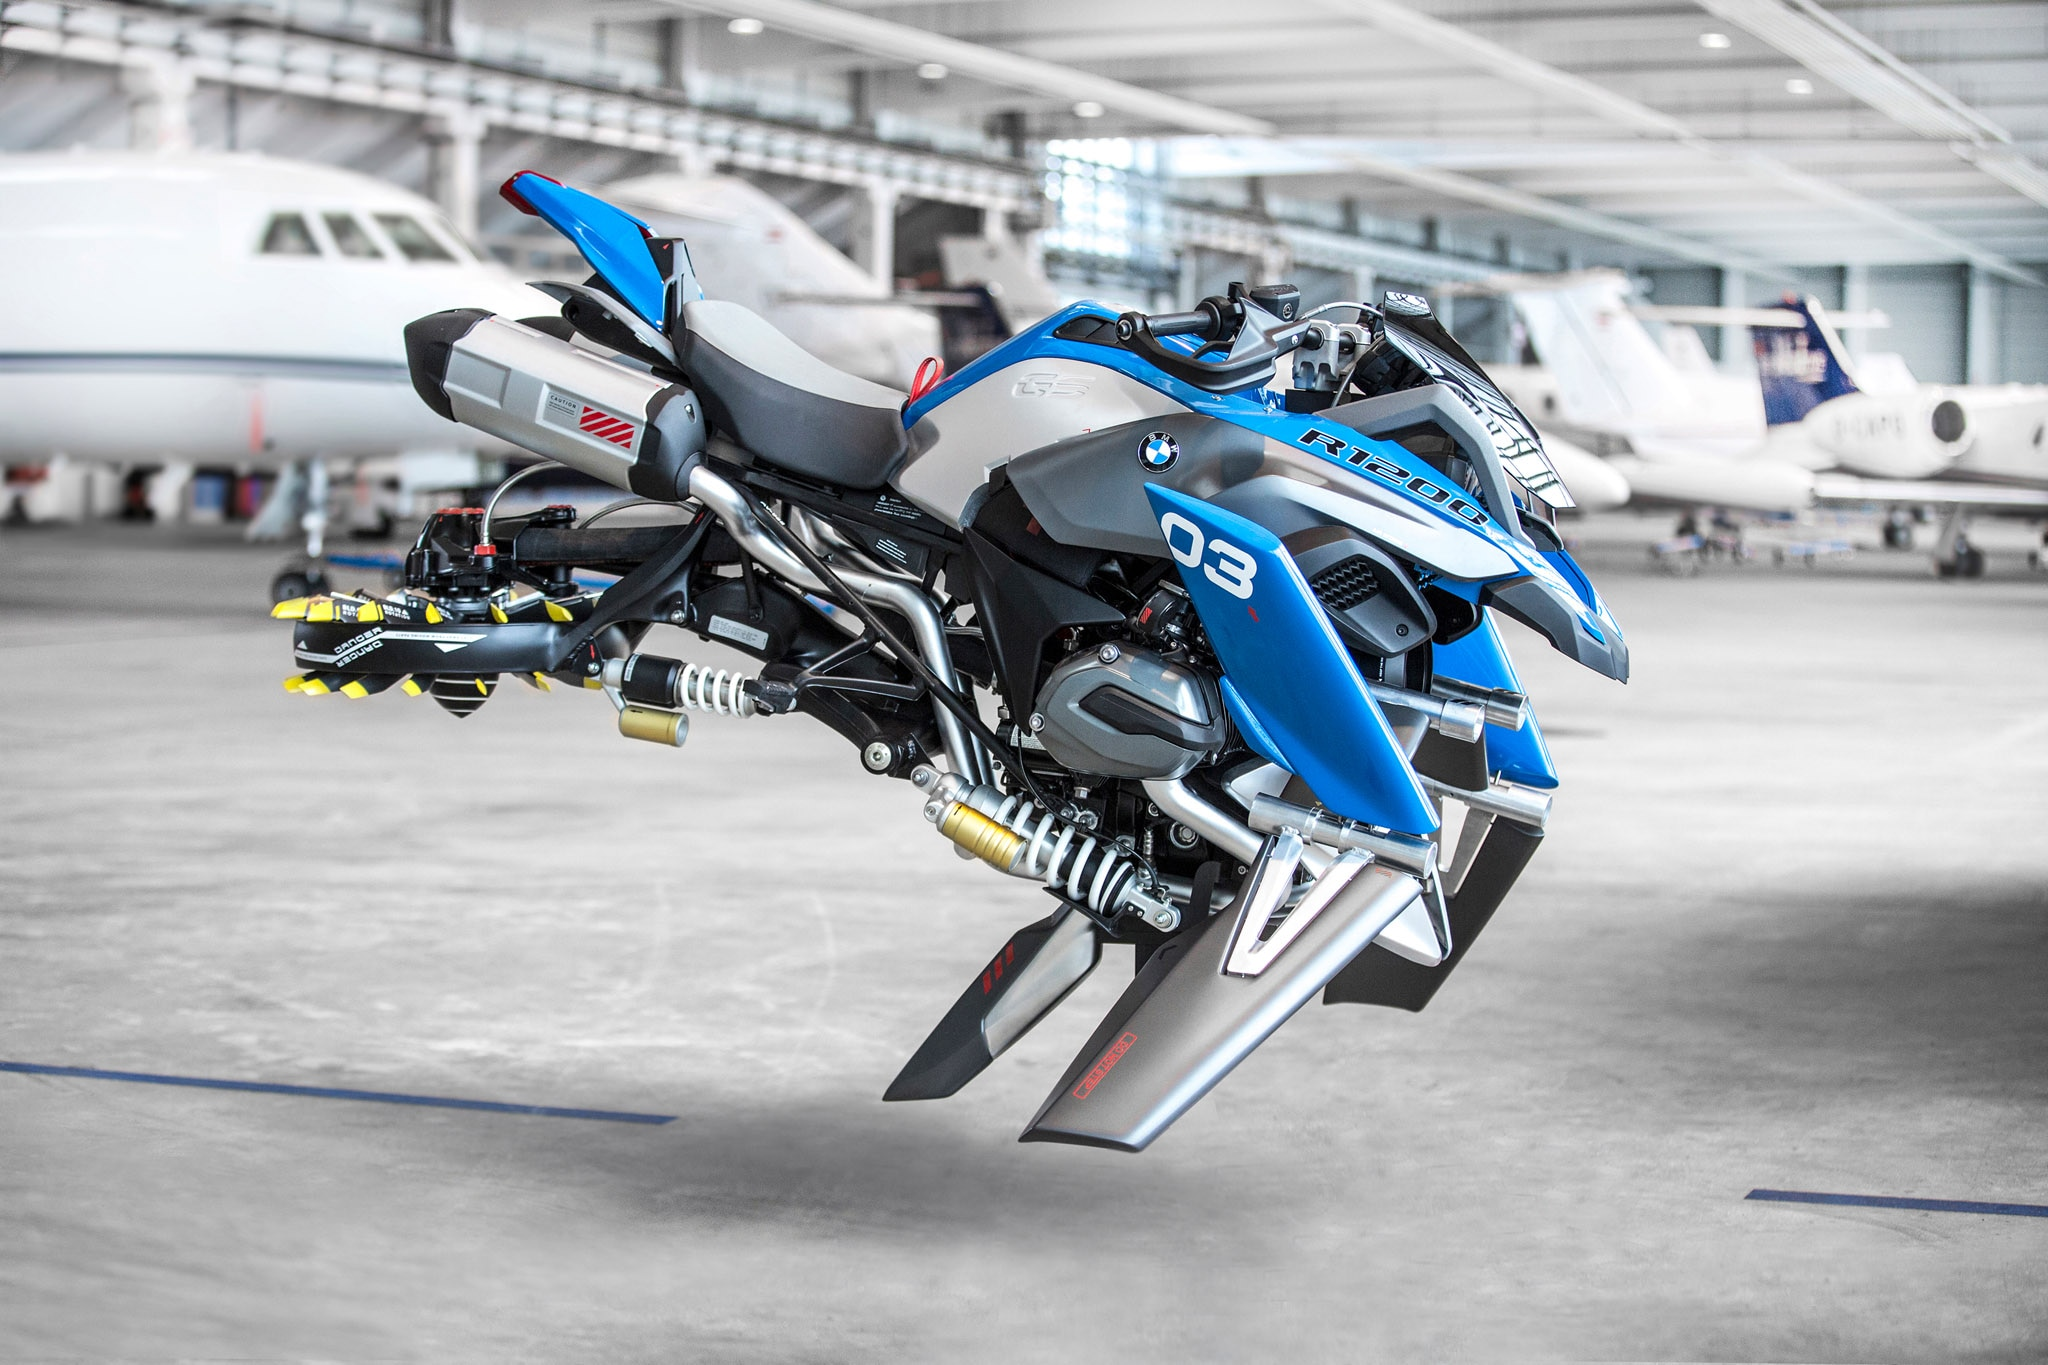 bmw hover ridebmw motorrad and lego technic | automobile magazine